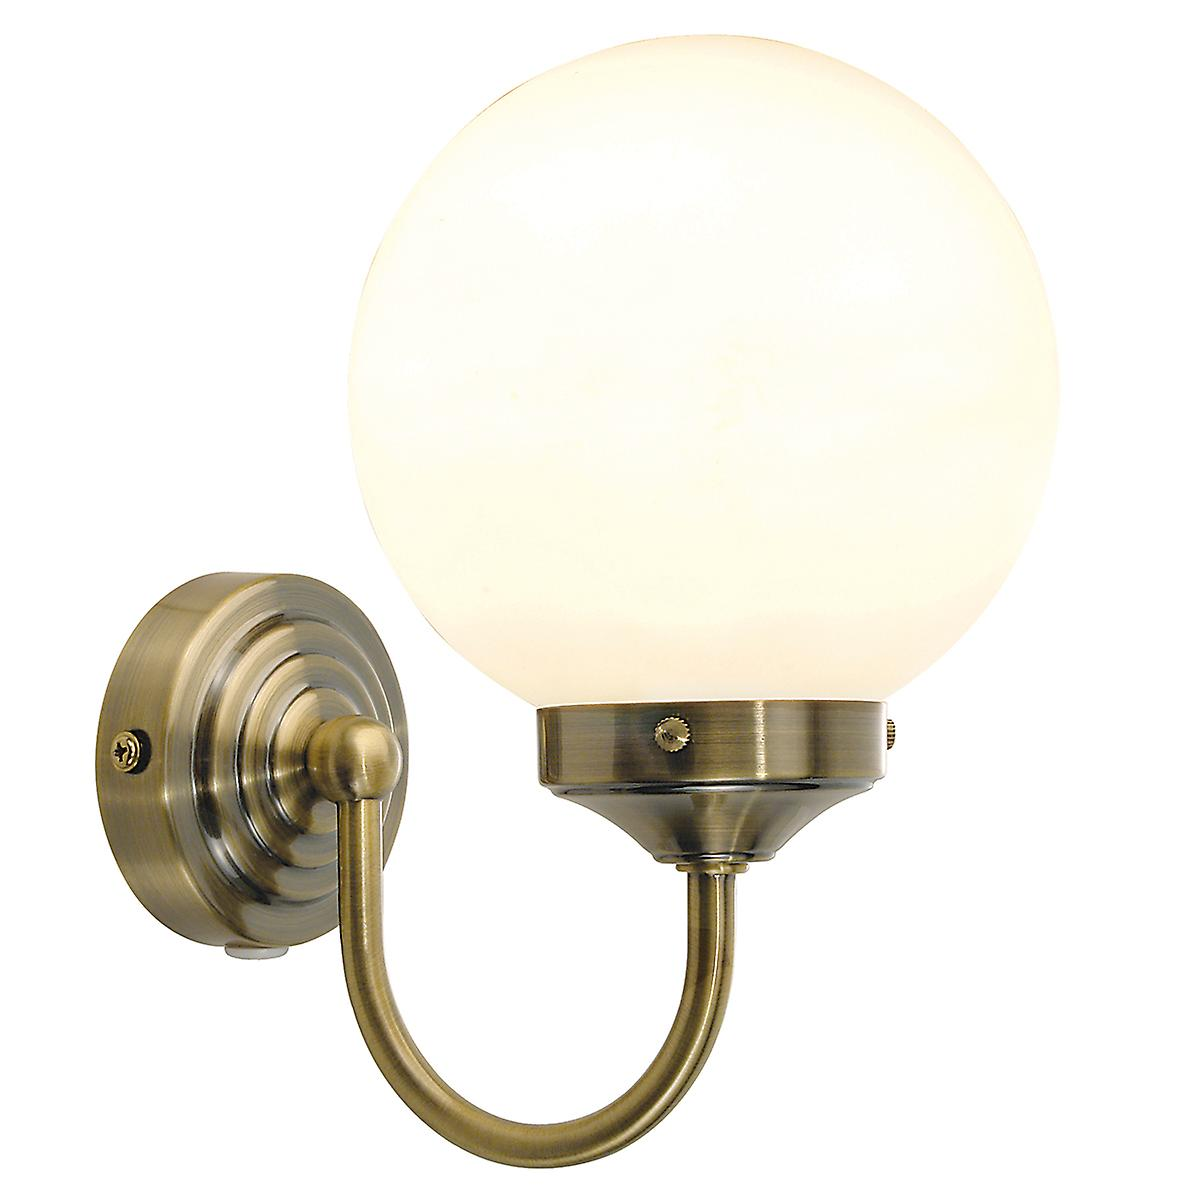 Dar BAR0775 Barclay Switched Bathroom Wall Light With Opal Glass Ball